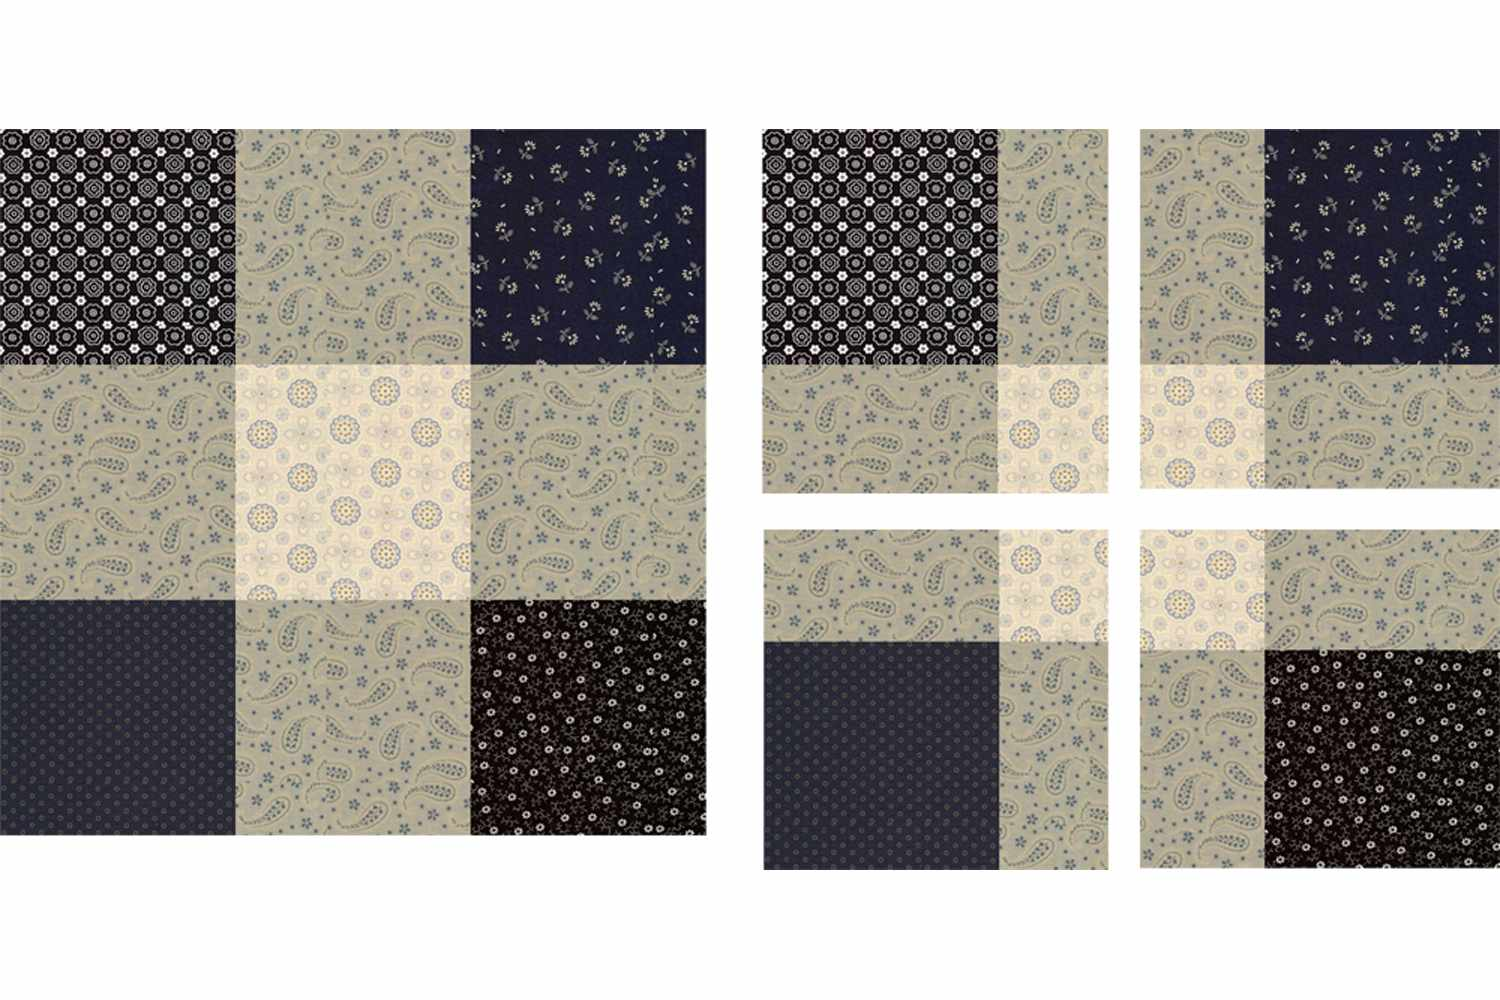 Disappearing Nine Patch Block in Neutral Colors